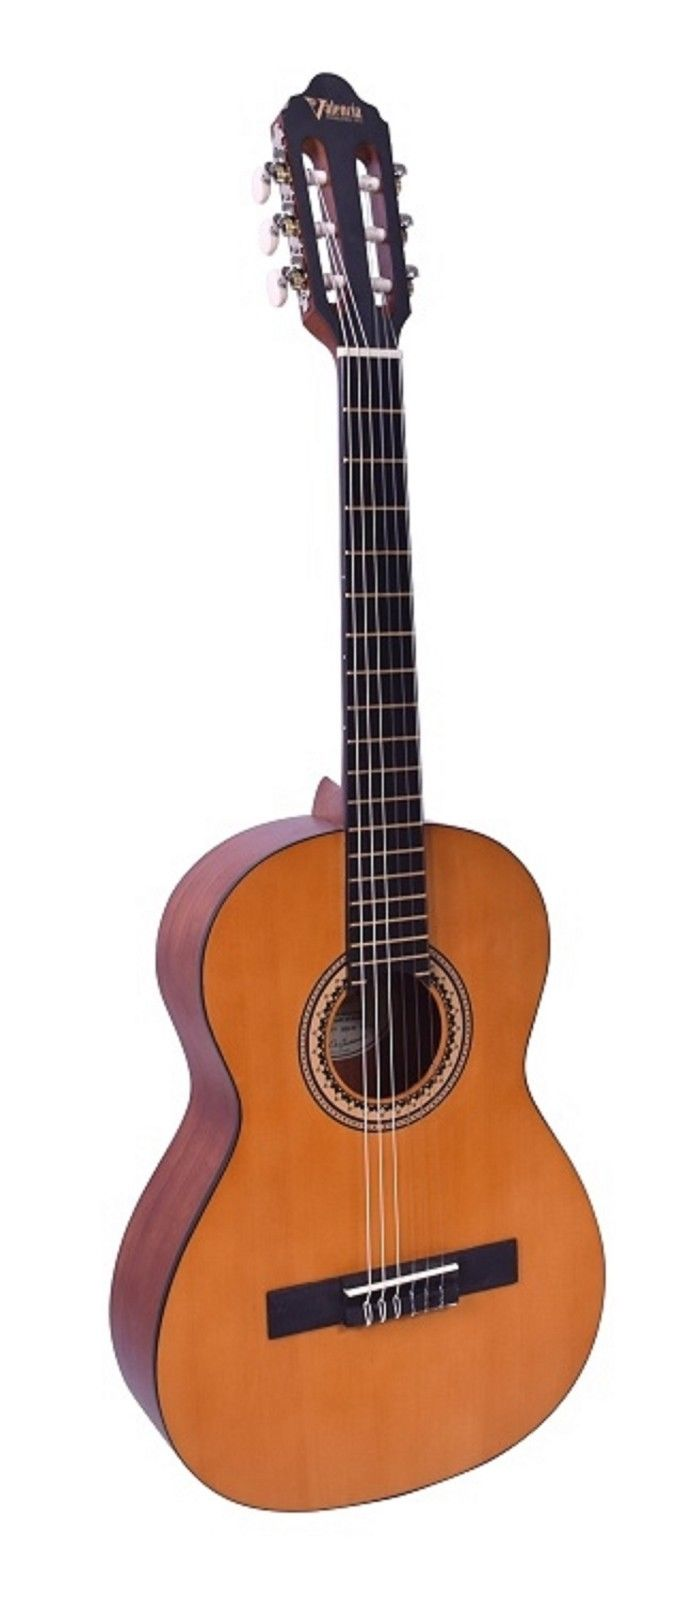 Valencia 200 Series 3/4 Size, Hybrid Classical Acoustic, this is Pre-Owned Item #VC203H-U